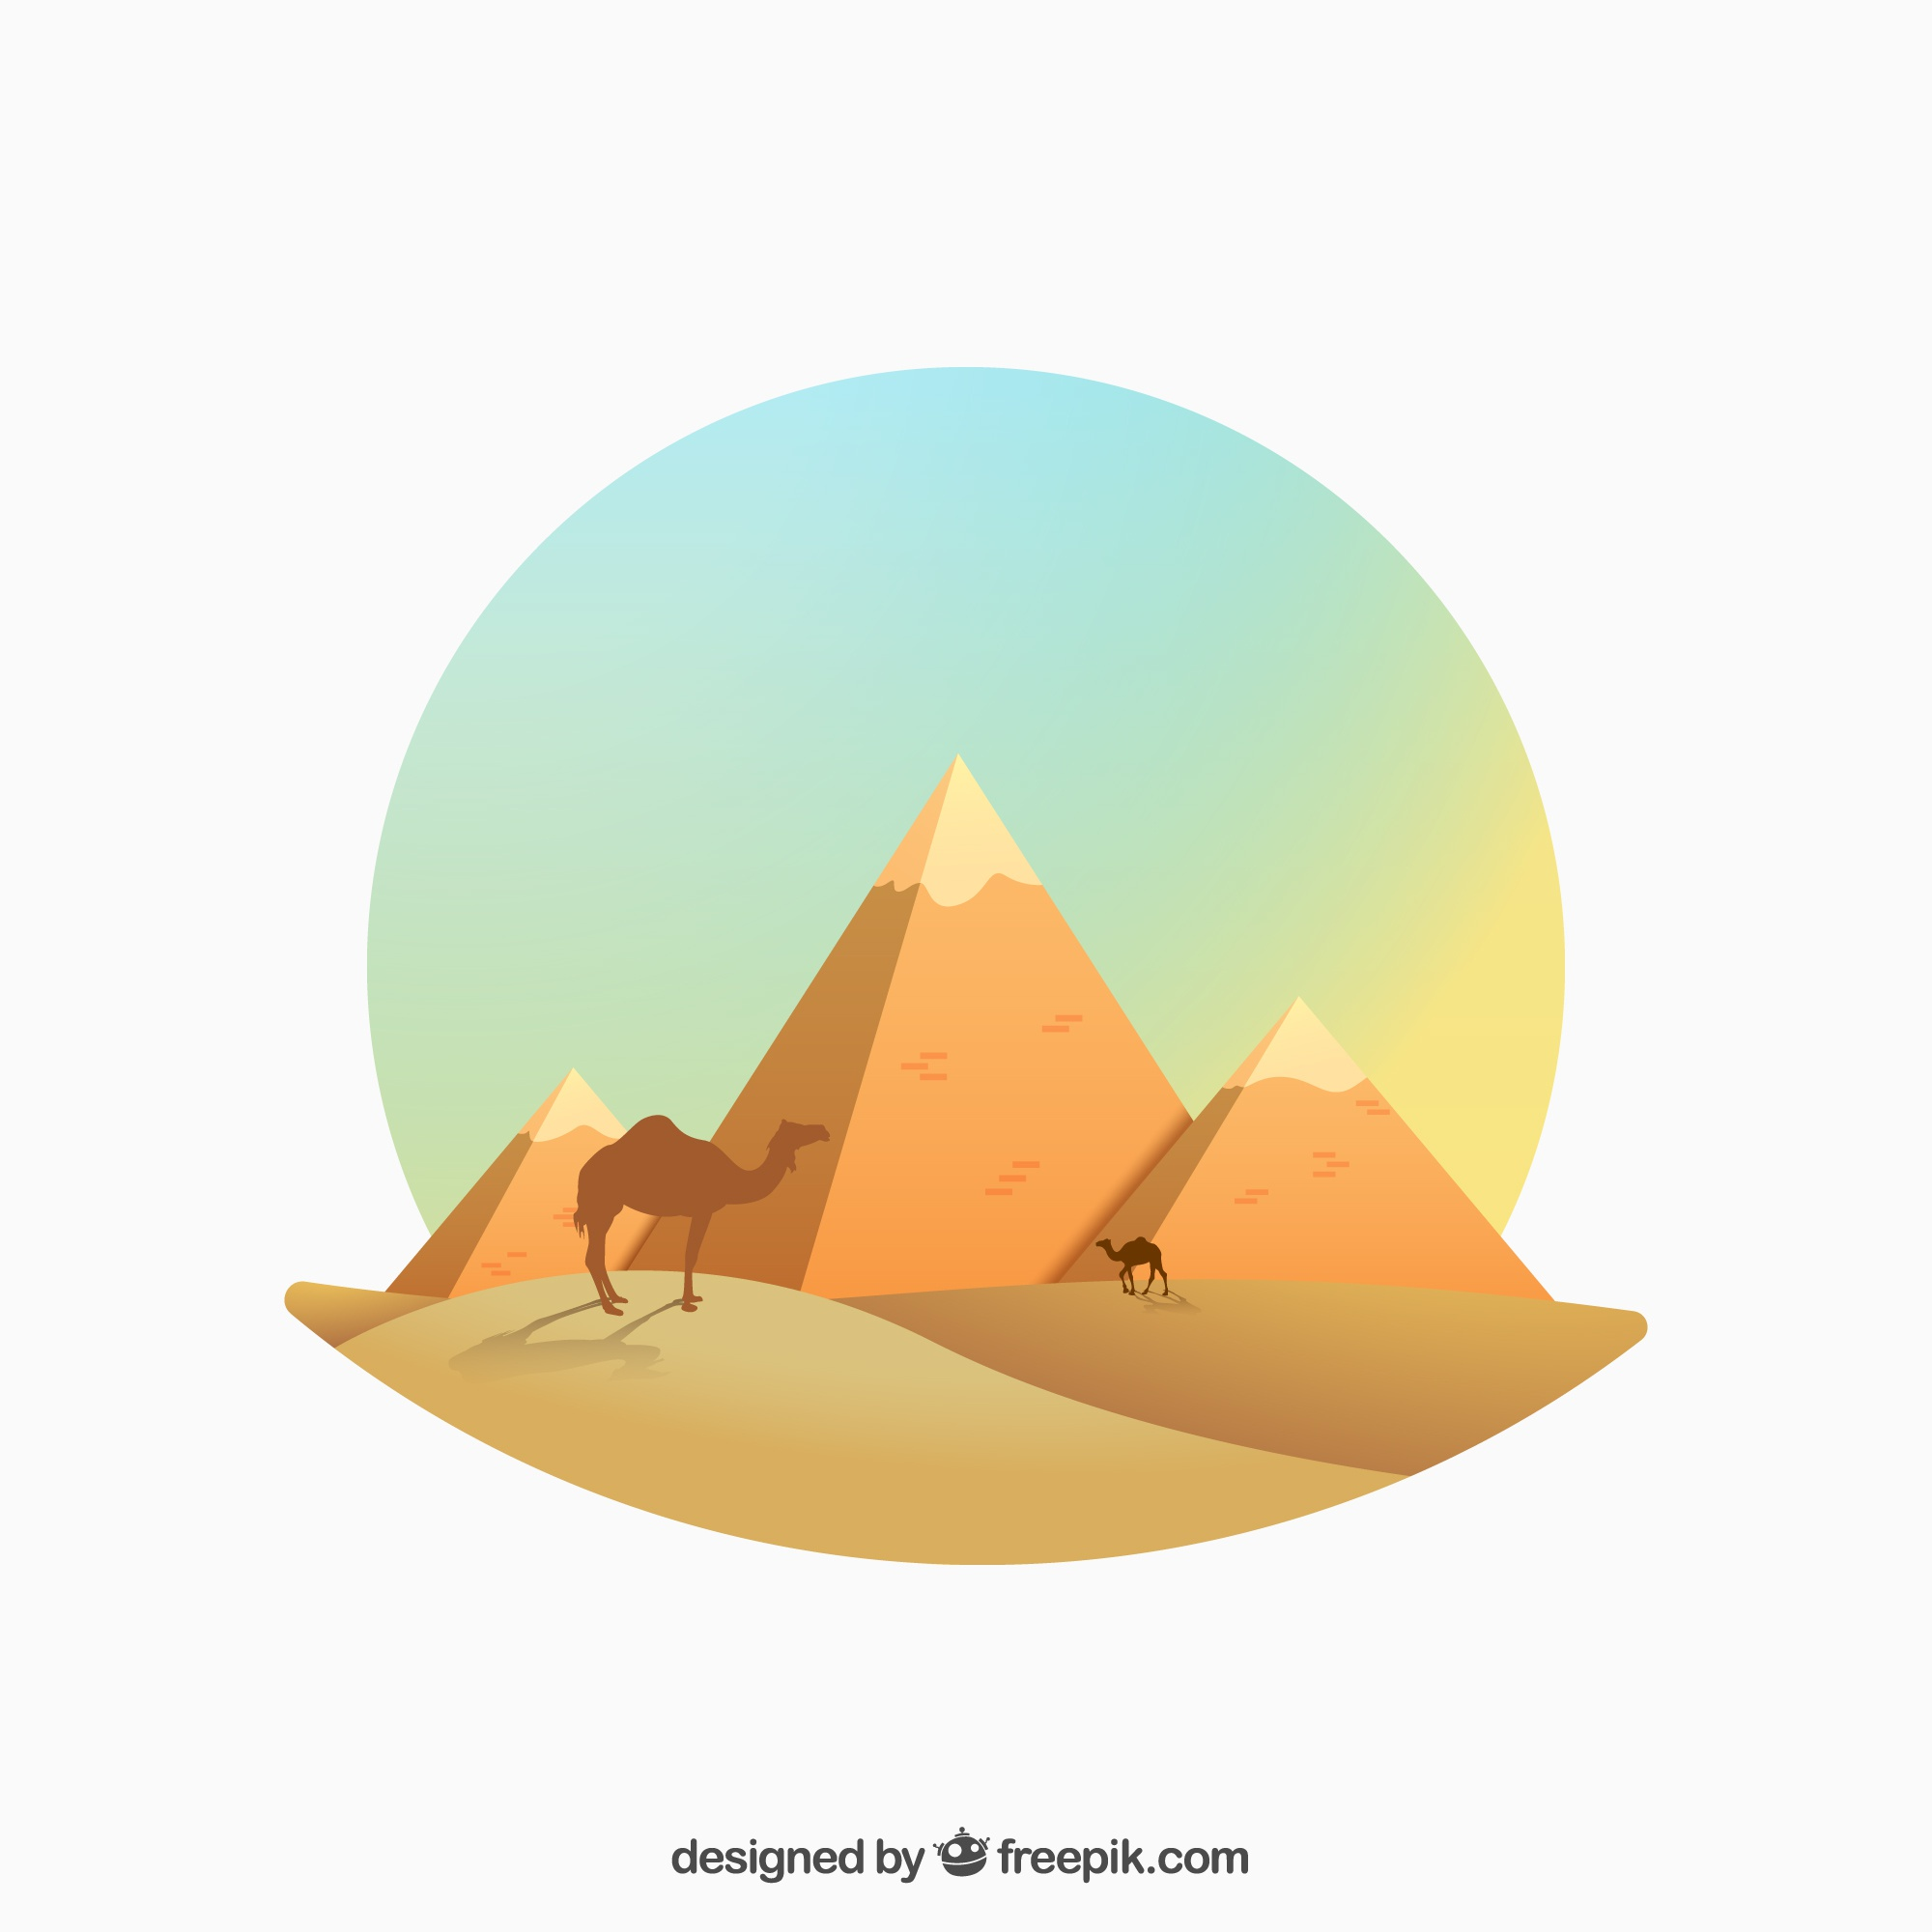 Egyptian pyramids illustration in gradient style